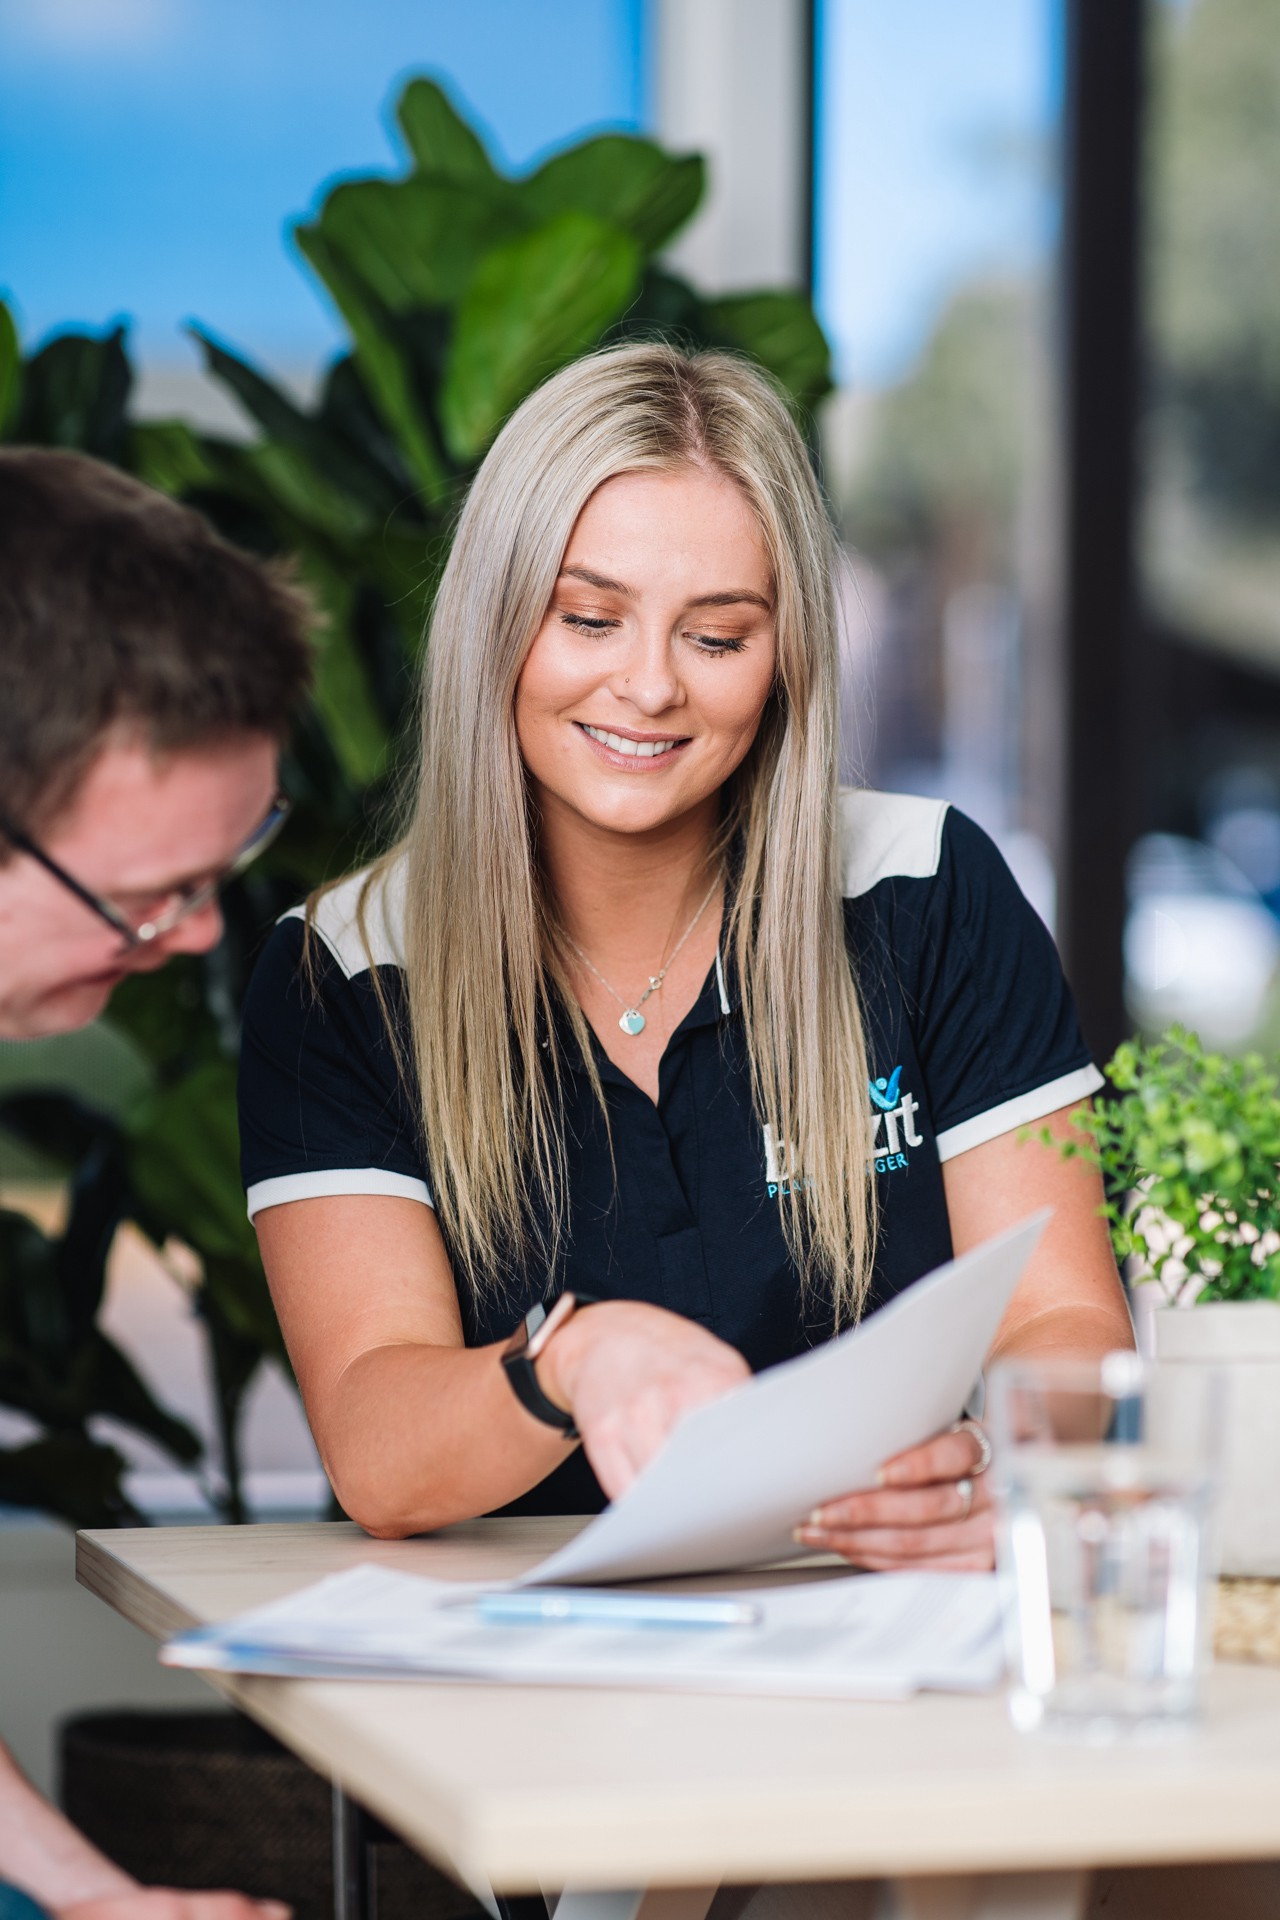 A female Blitzit staff member with long blonde hair wears a Navy & white Blitzit shirt, while guiding a participant through their Service Agreement. The participant is male, with short brown hair and glasses.